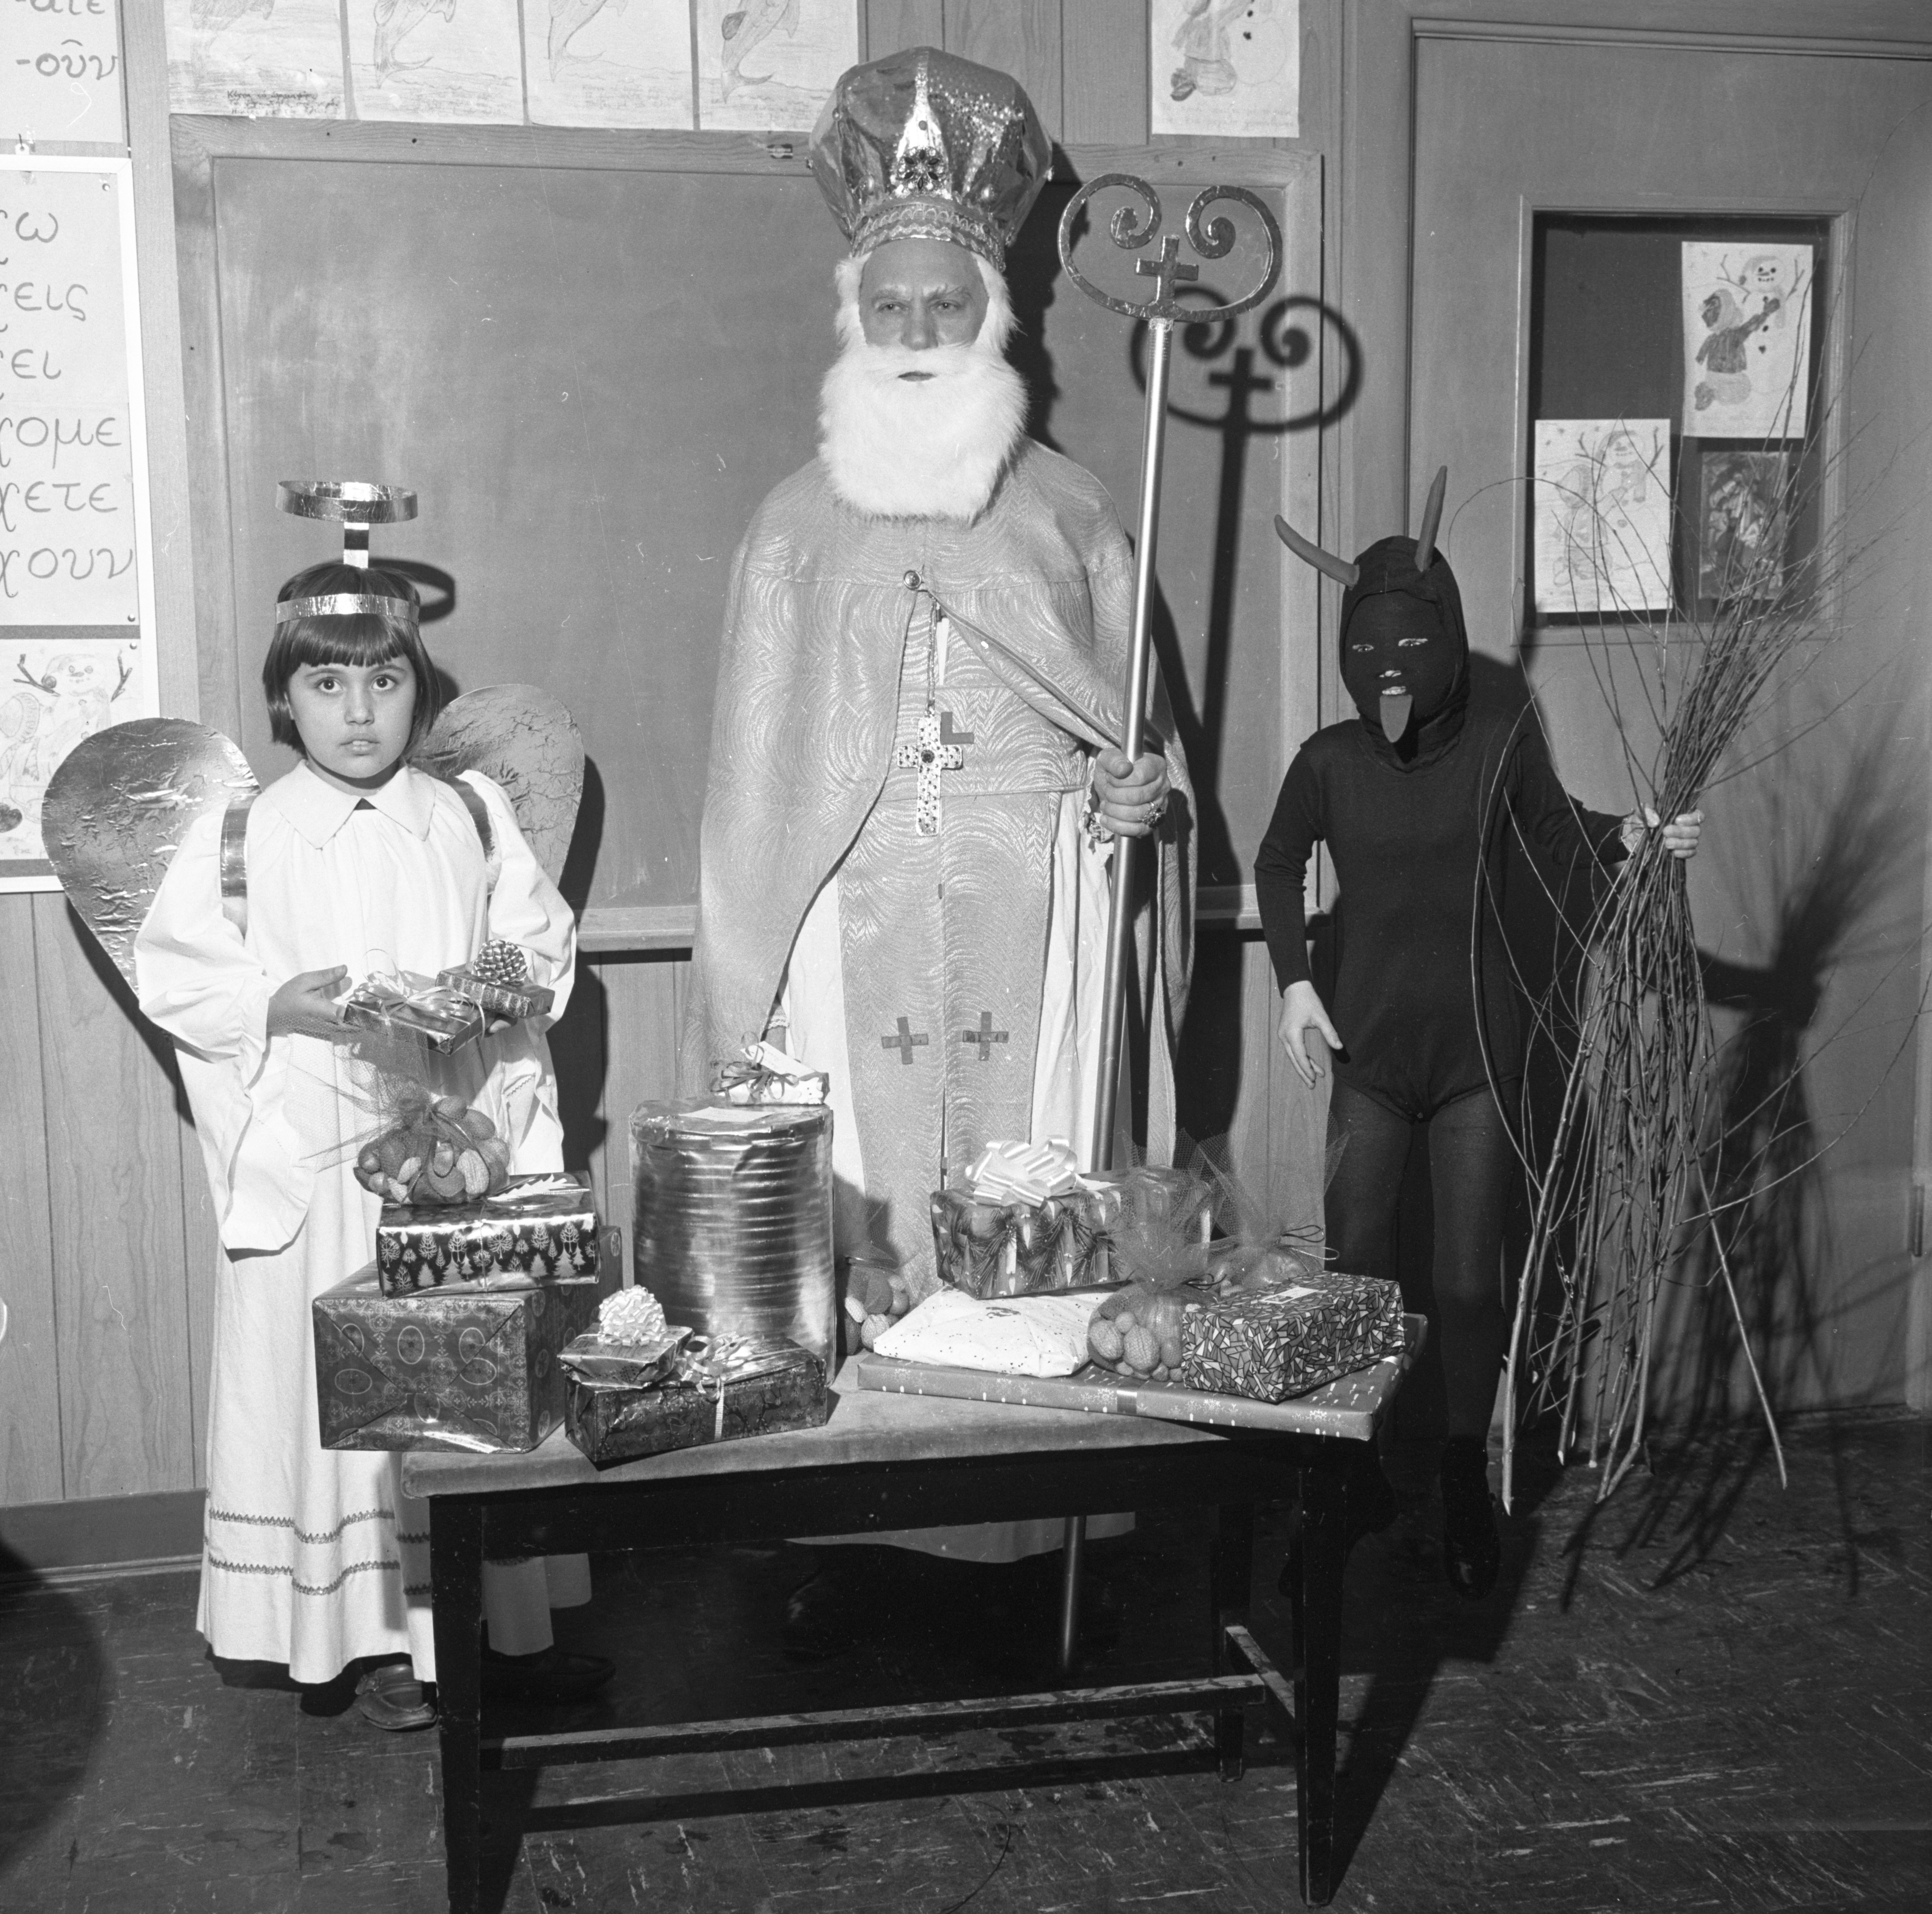 Local Ukranians Celebrate St. Nicholas Day, December 1966 image